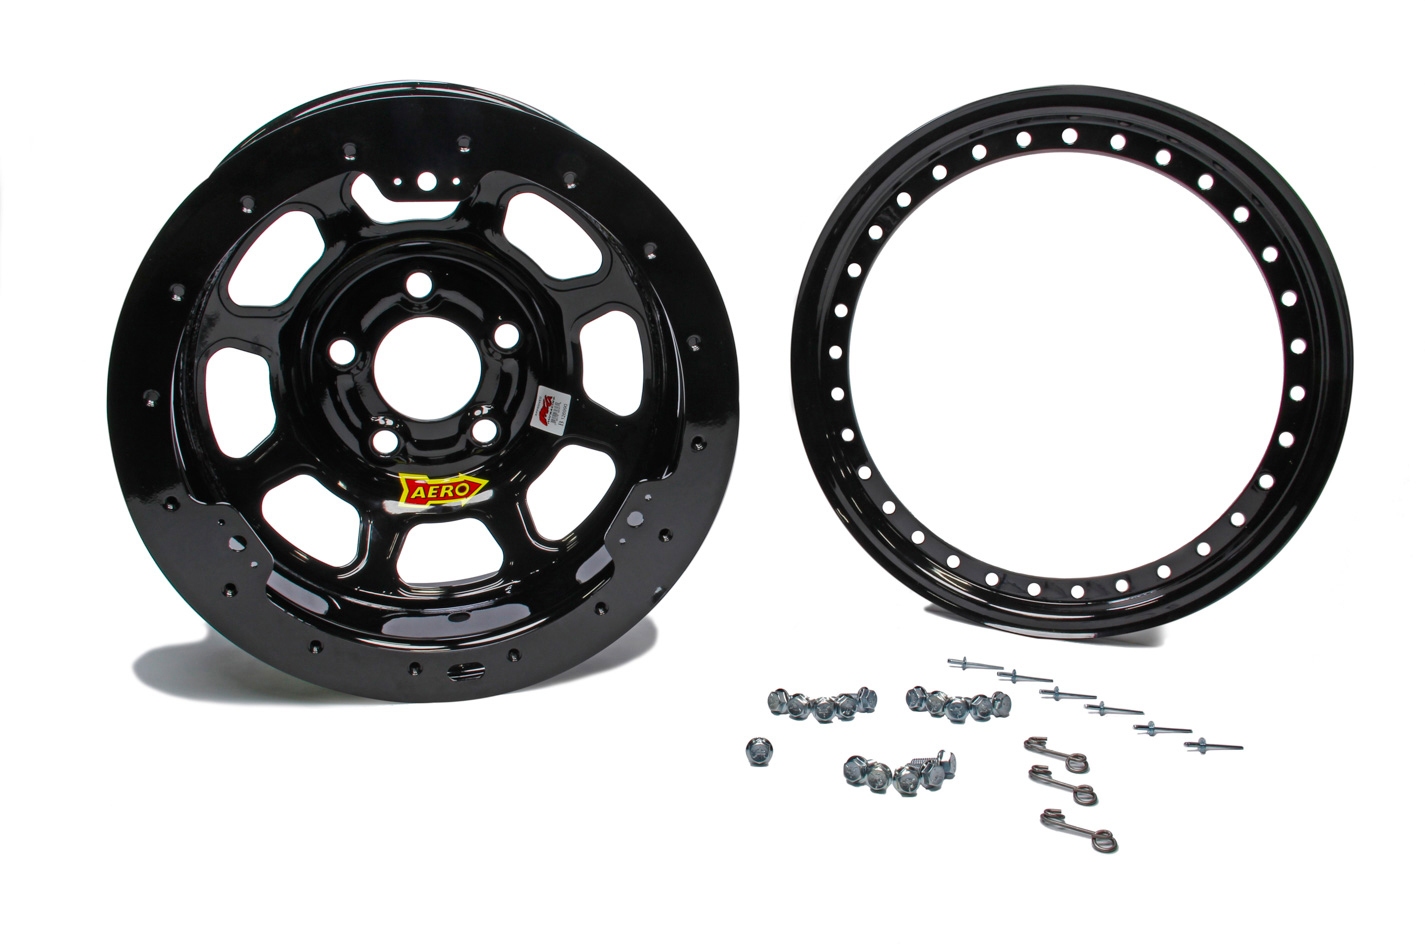 Aero Race 13x8 2in. 4.50 Black Beadlock  Wheel